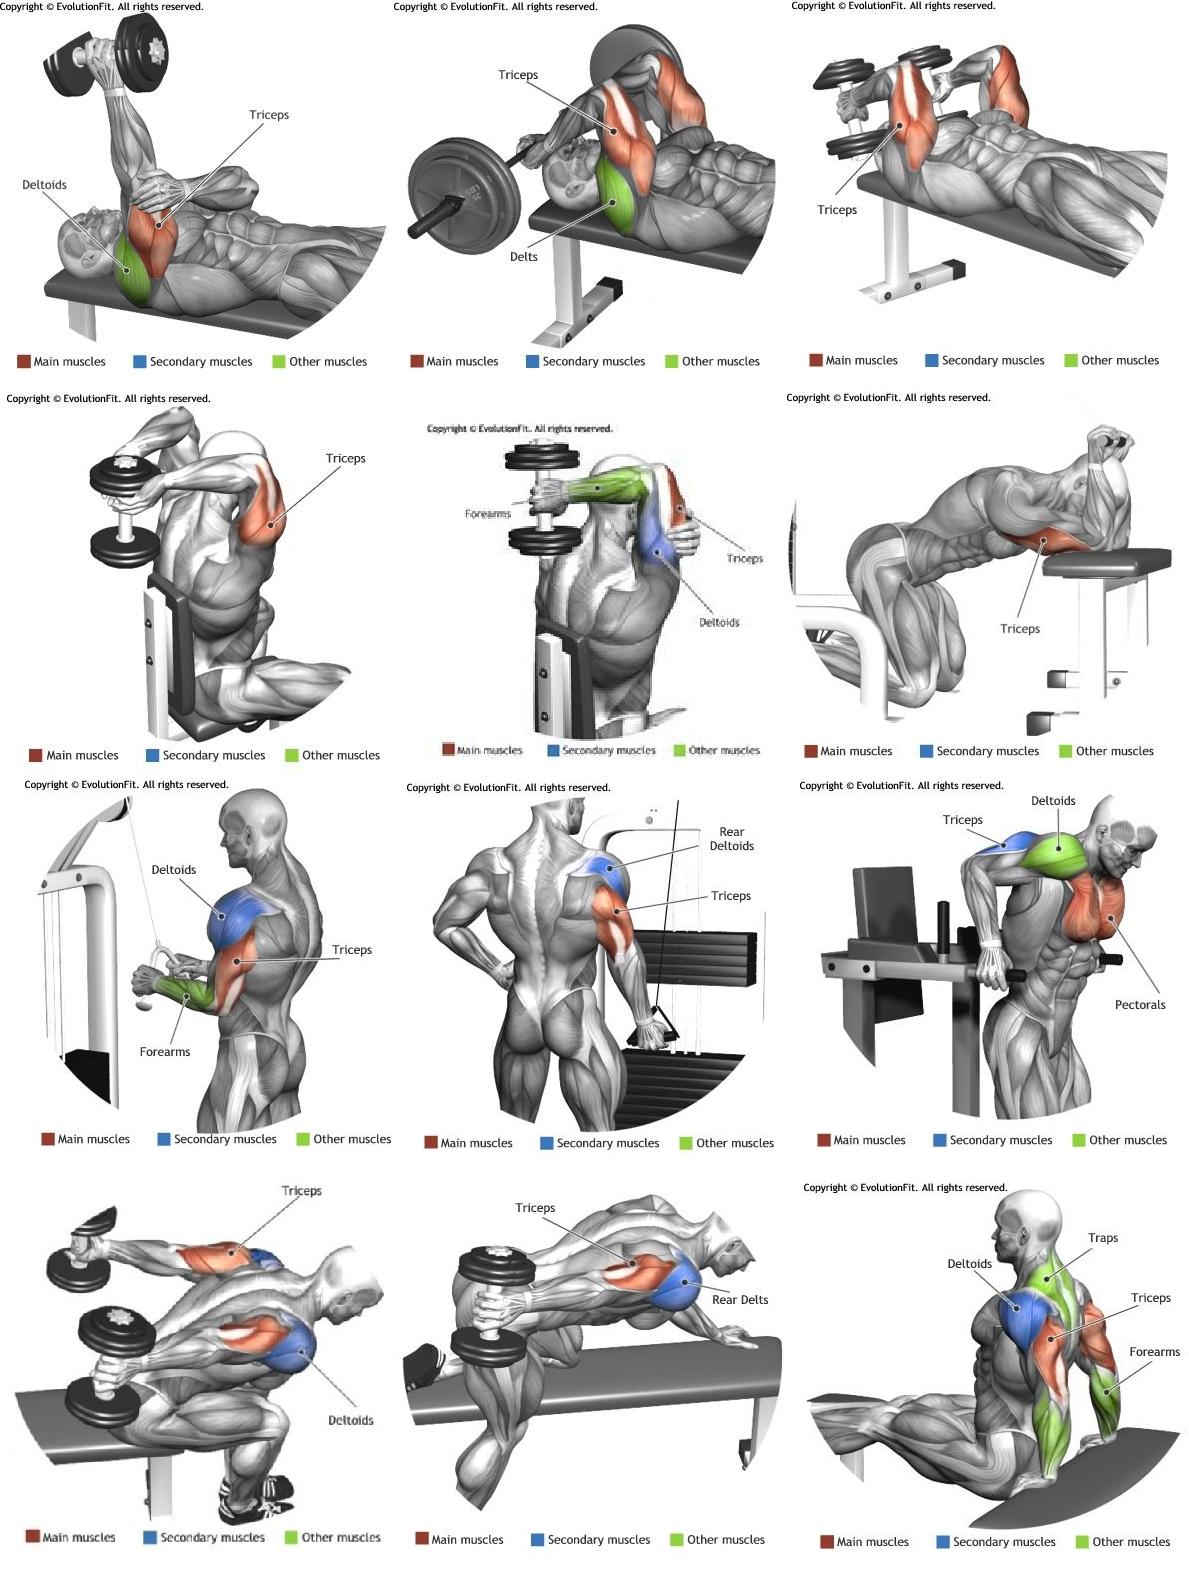 Pin by Raul aguilar on Gym exercise workout | Gym workouts